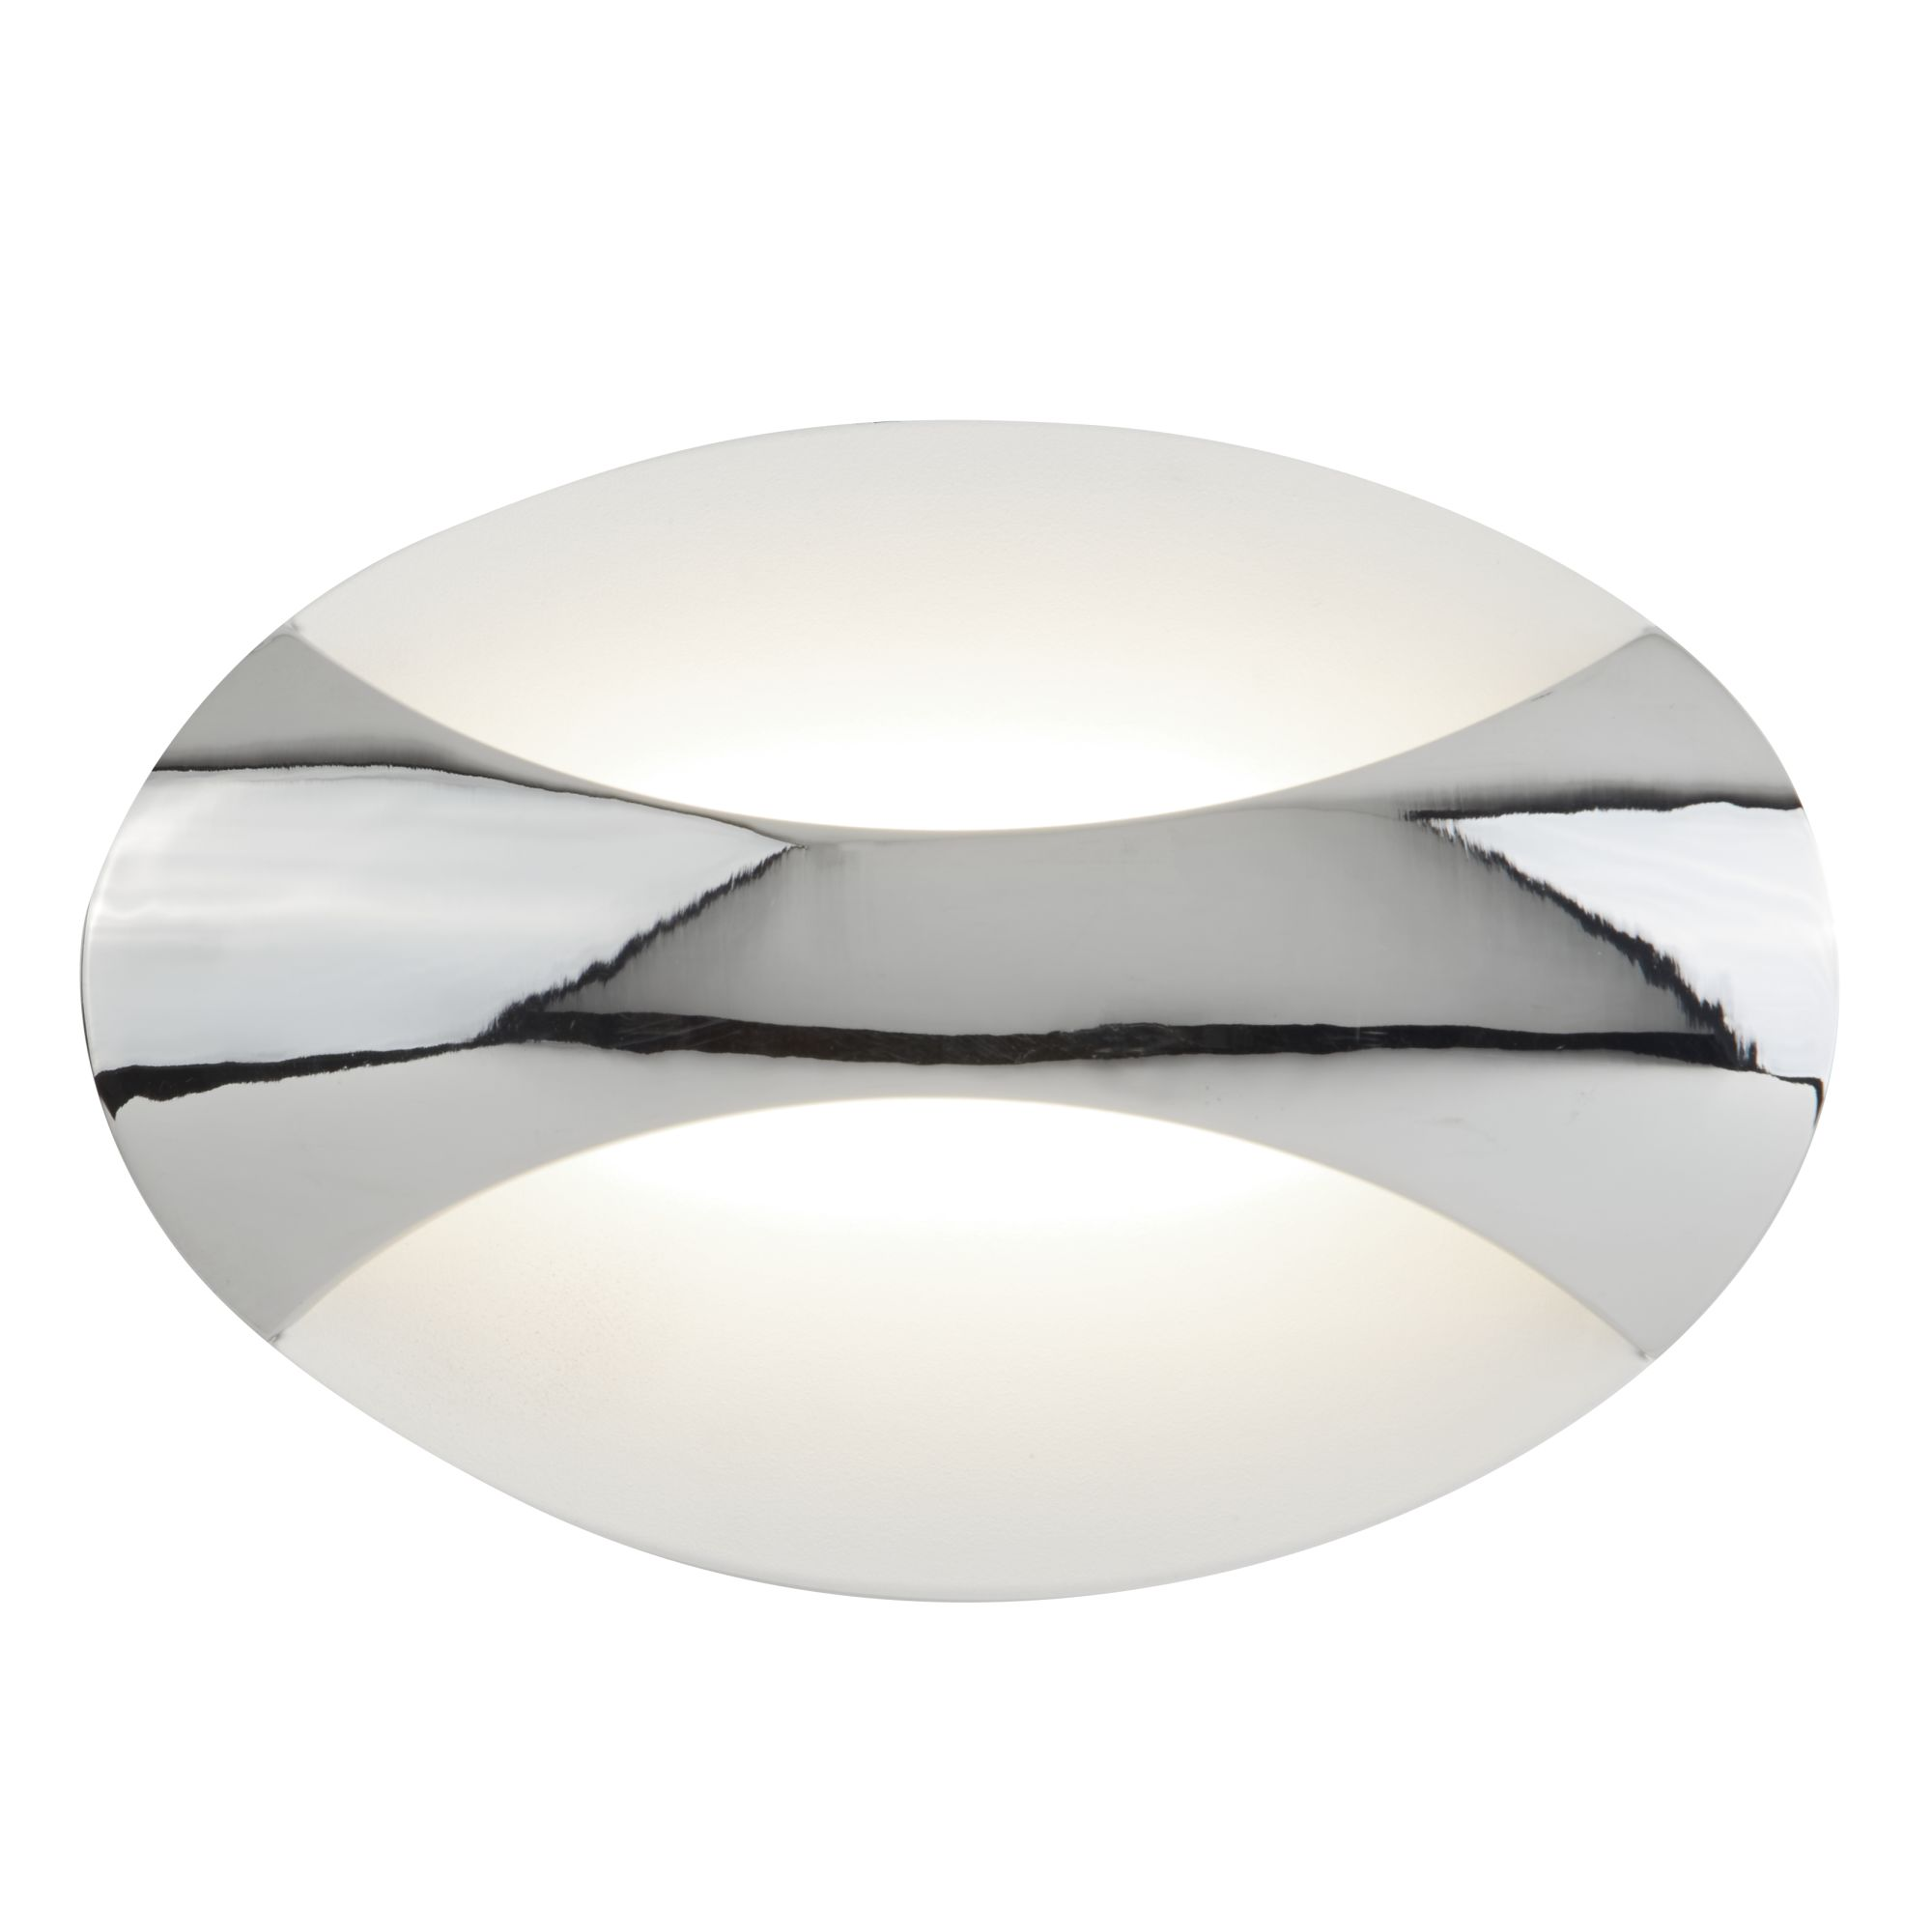 LED OVAL WALL LIGHT, CHROME/SAND WHITE